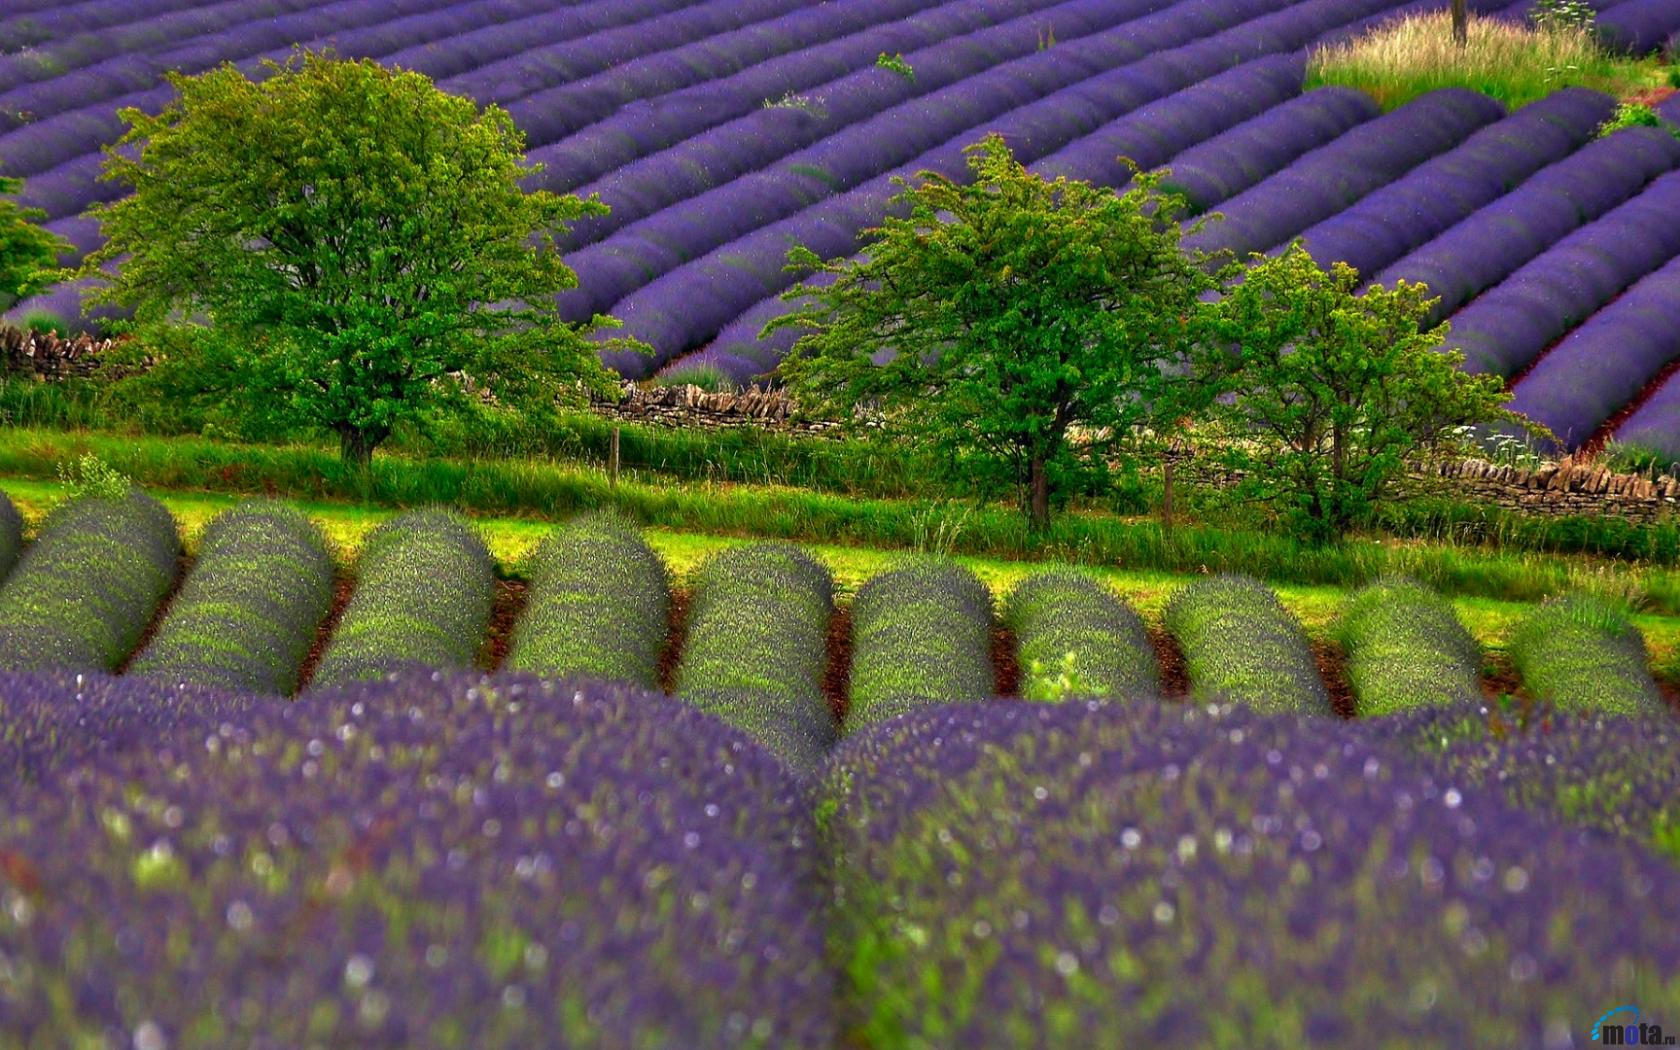 Download Wallpaper Lavender field 1680 x 1050 widescreen Desktop 1680x1050